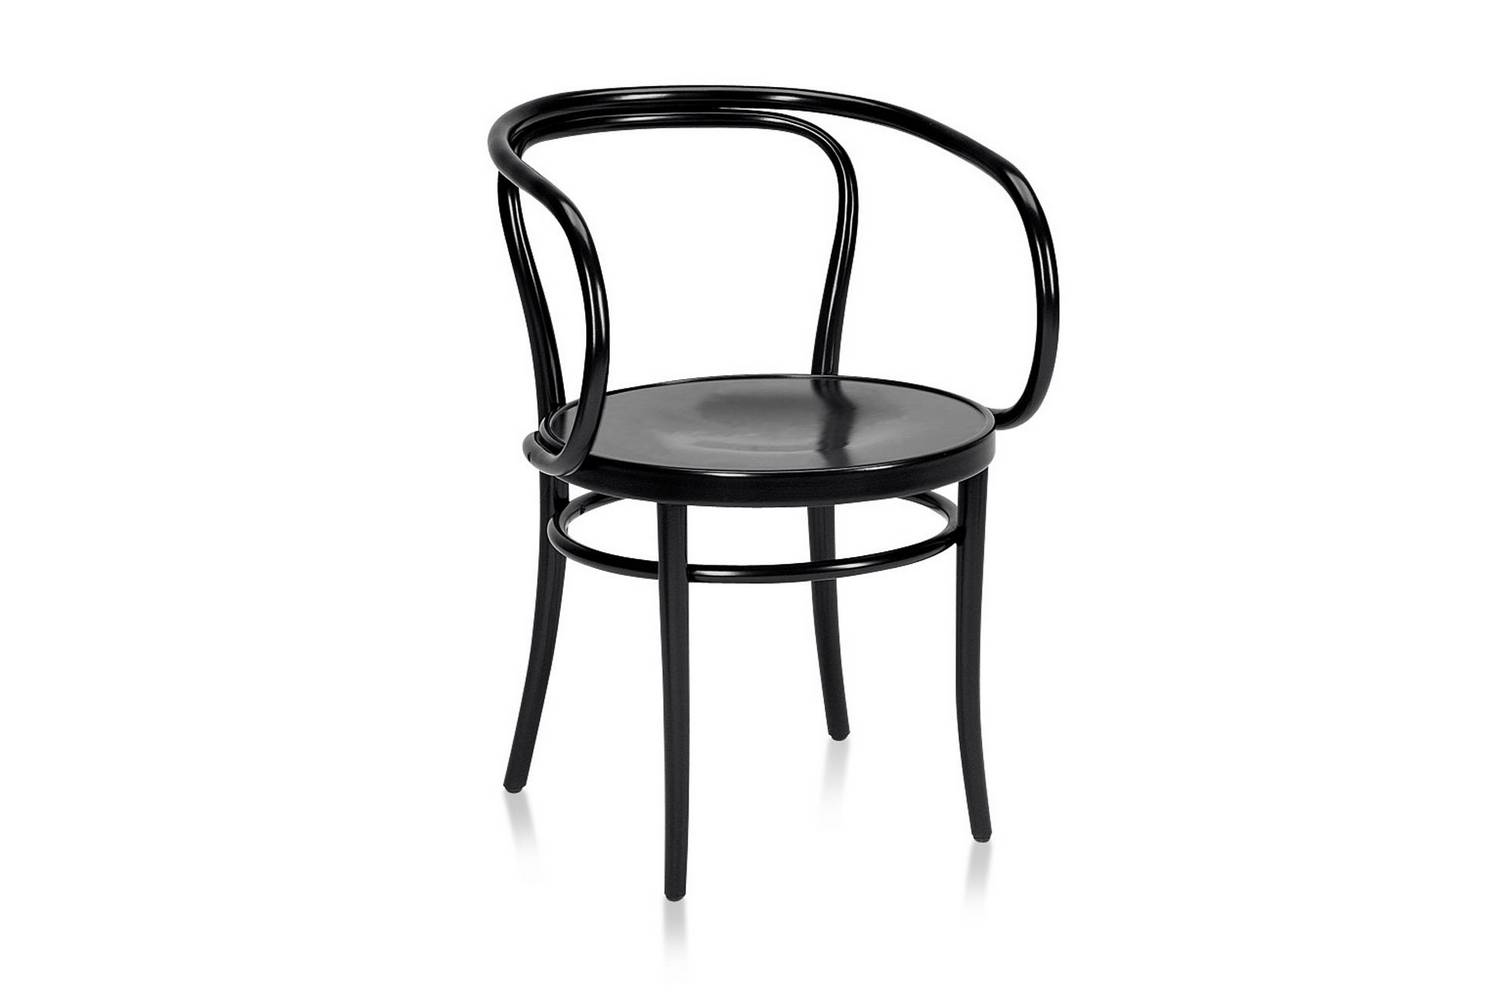 Tonet Stühle Wiener Stuhl Chair By August Thonet For Gebruder Thonet Vienna